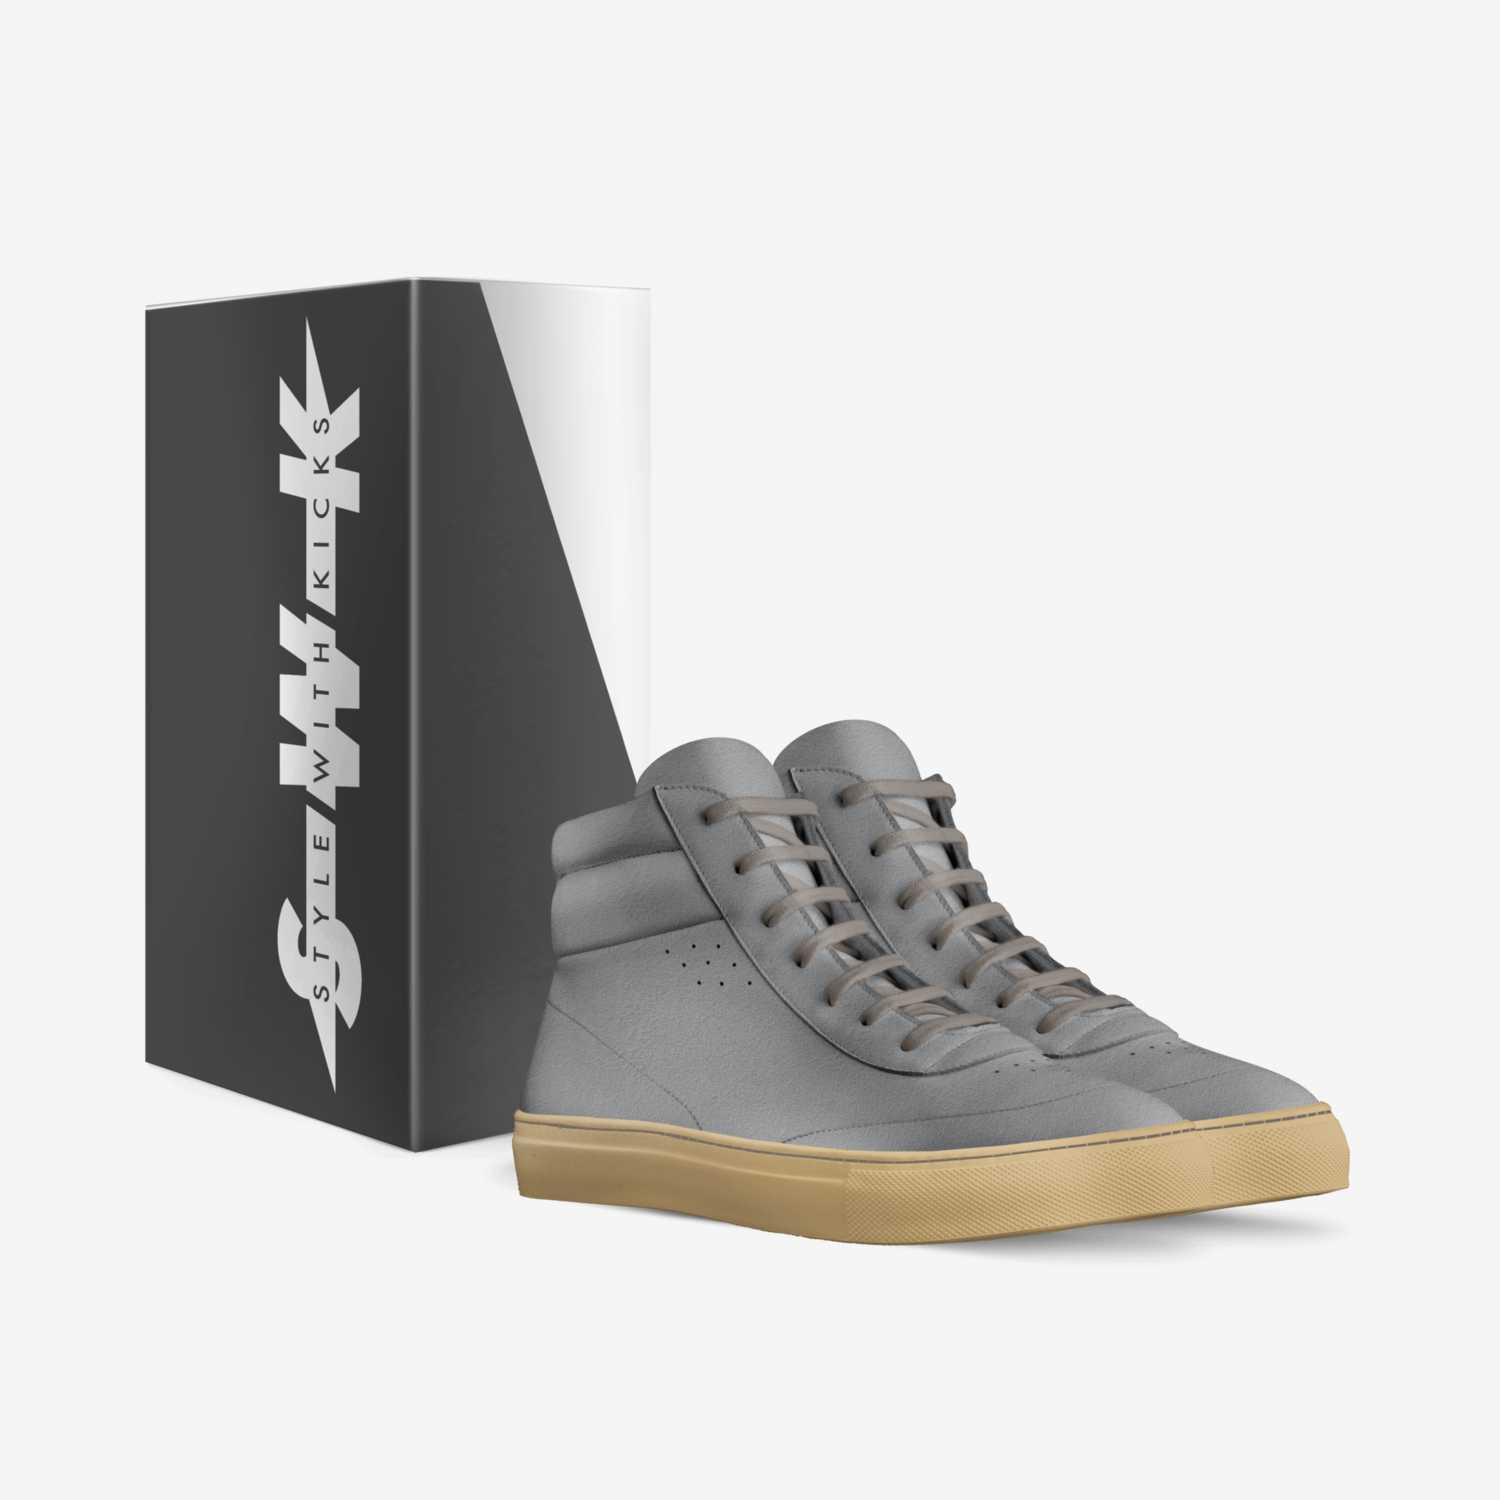 Cemento Duro  custom made in Italy shoes by Style With Kicks | Box view